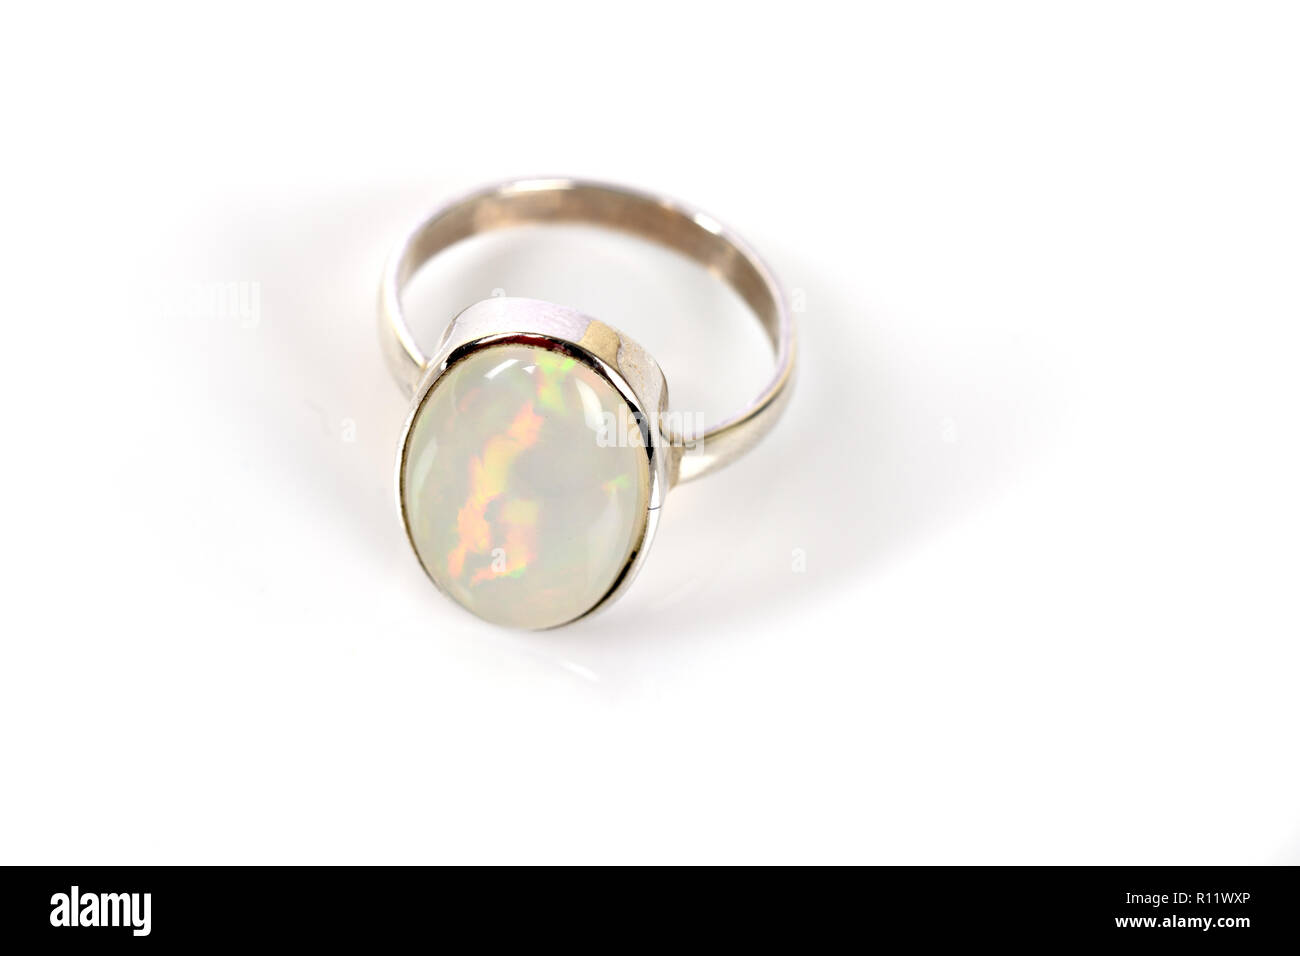 Opal Ring in silver iridescent on white background - Stock Image